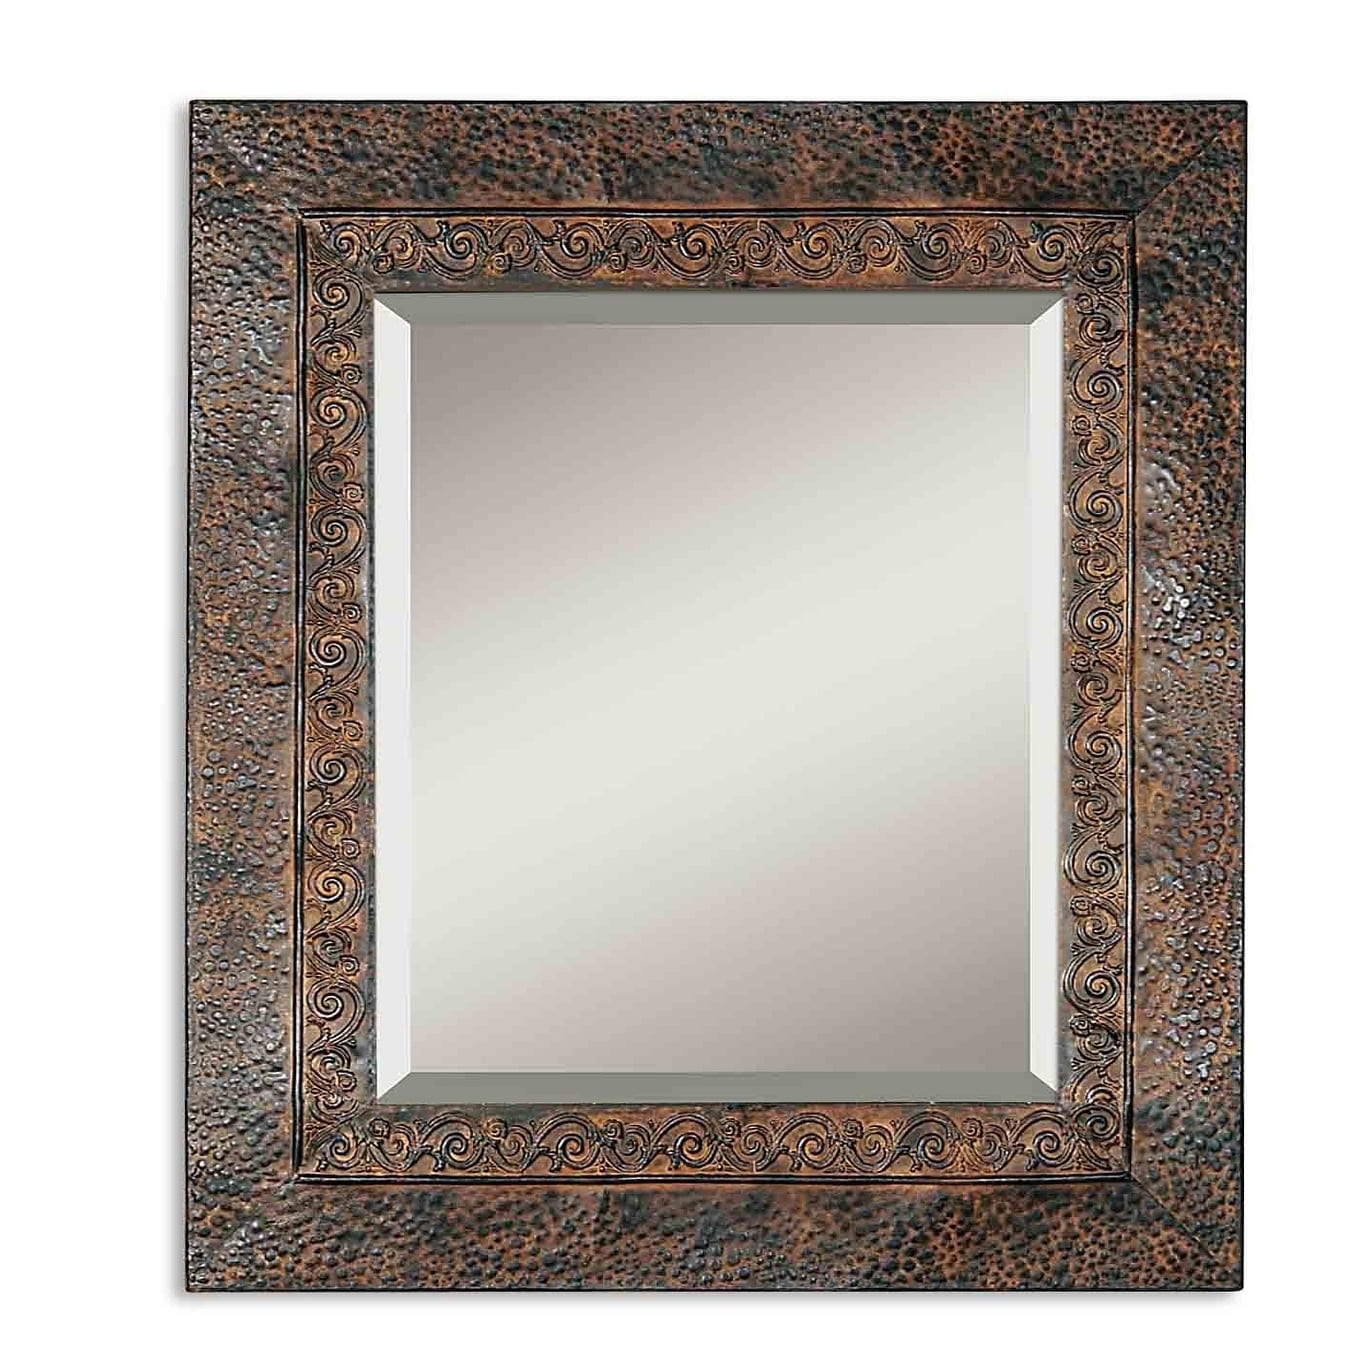 Buy Bronze Finish Mirrors Online at Overstock.com | Our Best ...